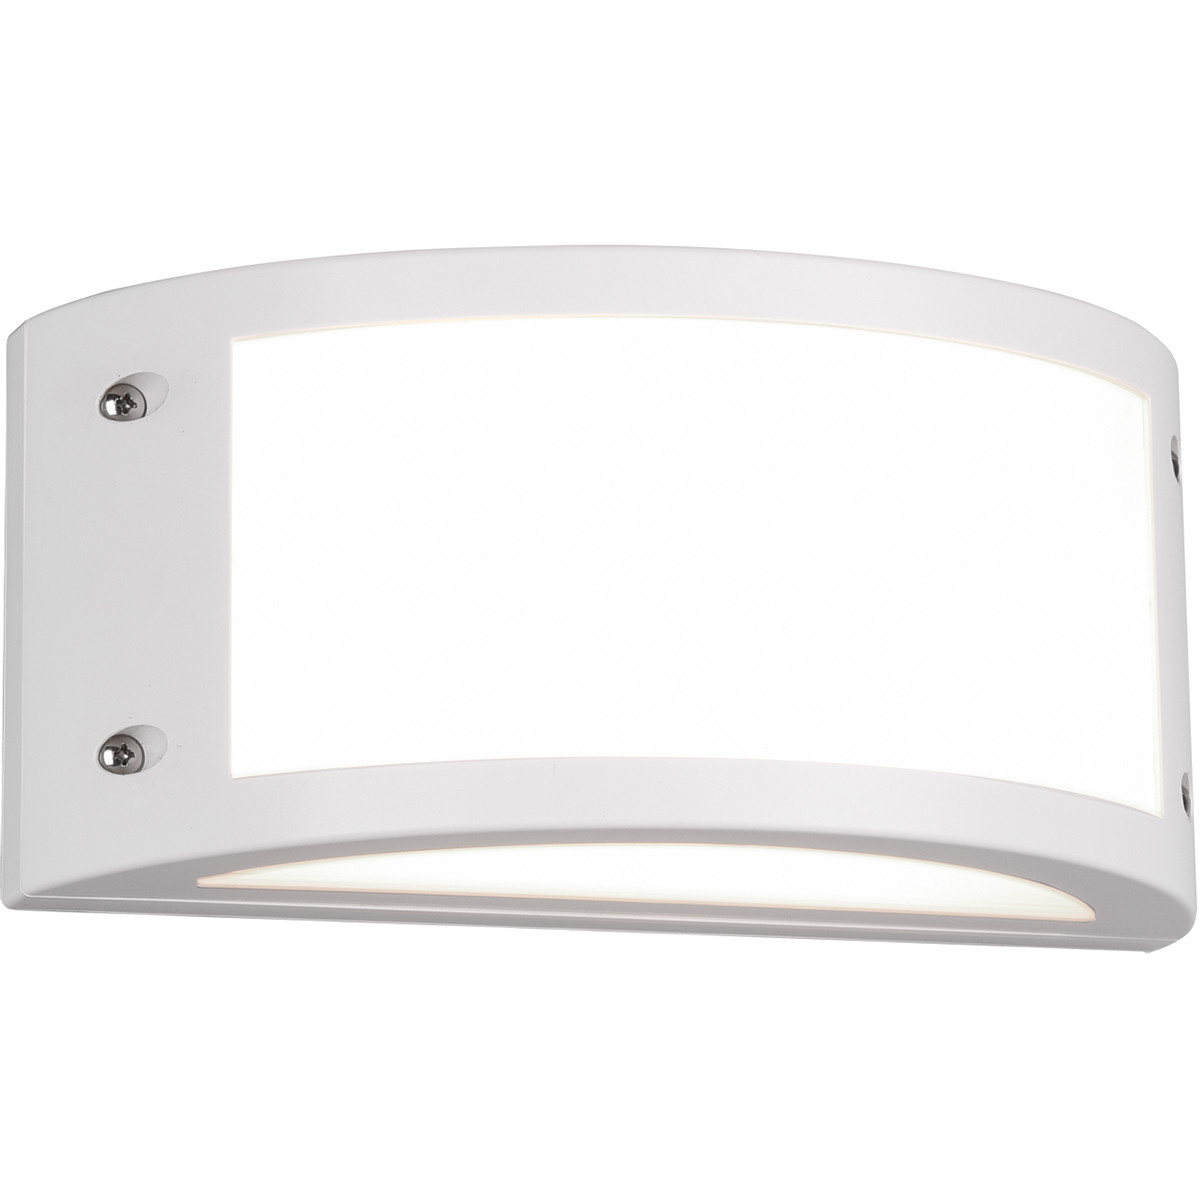 LED Tuinverlichting - Tuinlamp - Trion Keraly - Wand - 12W - Mat Wit - Kunststof